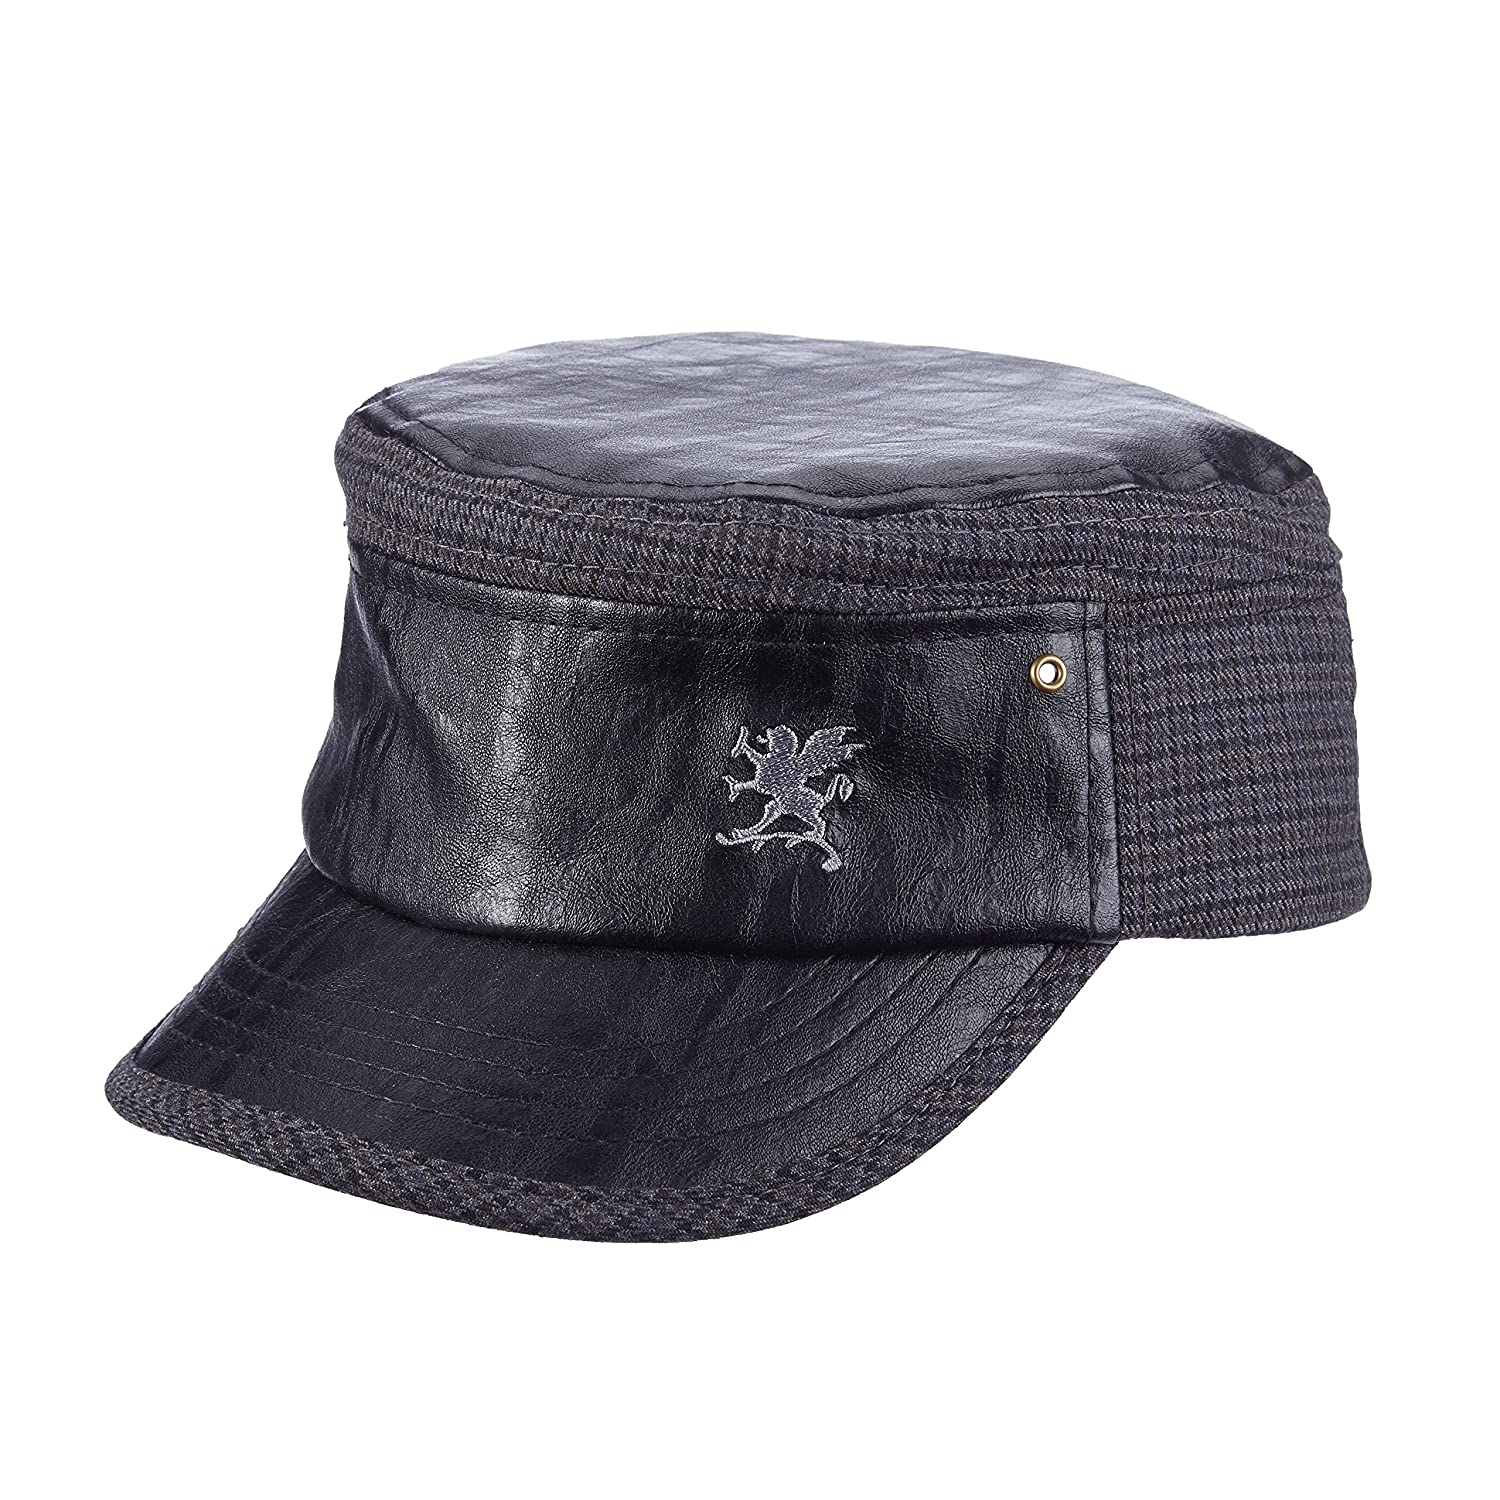 SAW676 STACY ADAMS Faux Leather Front Logo Brocade Military Cadet HAT